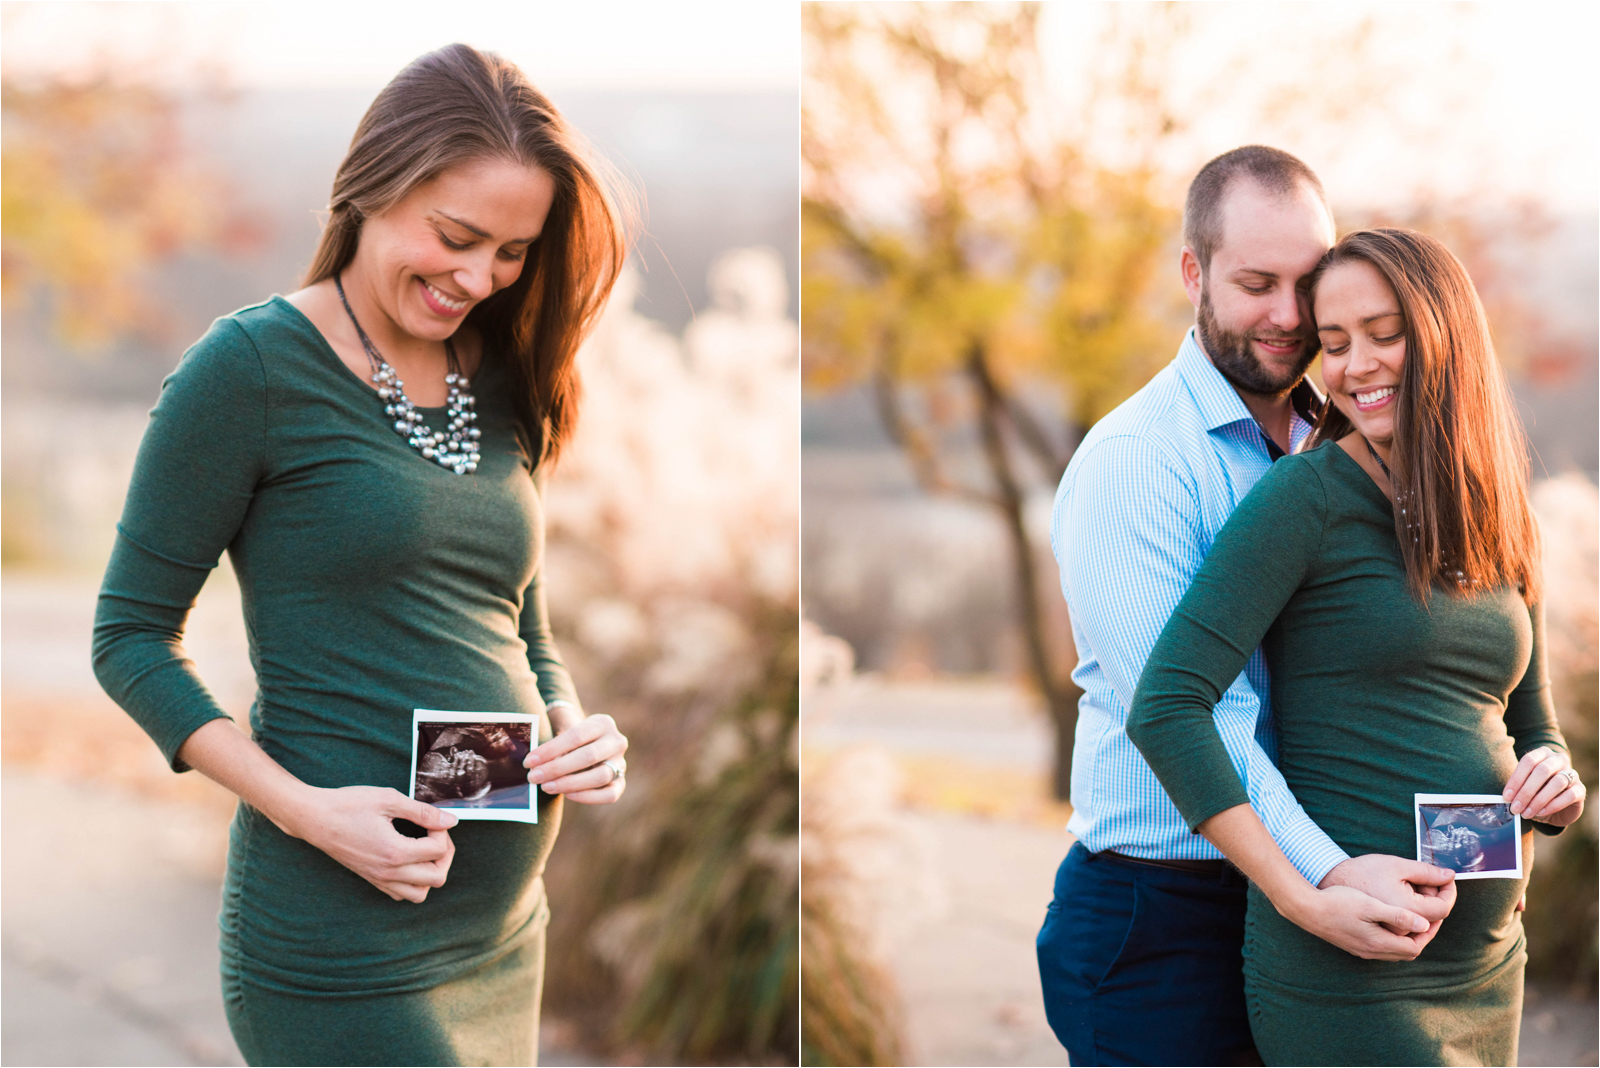 pregnancy-reveal-photography-session-husband-wife-green-dress-blue-shirt-navy-pants-sonogram-jessica-capozzola-libby-hill-park-richmond-va-rva